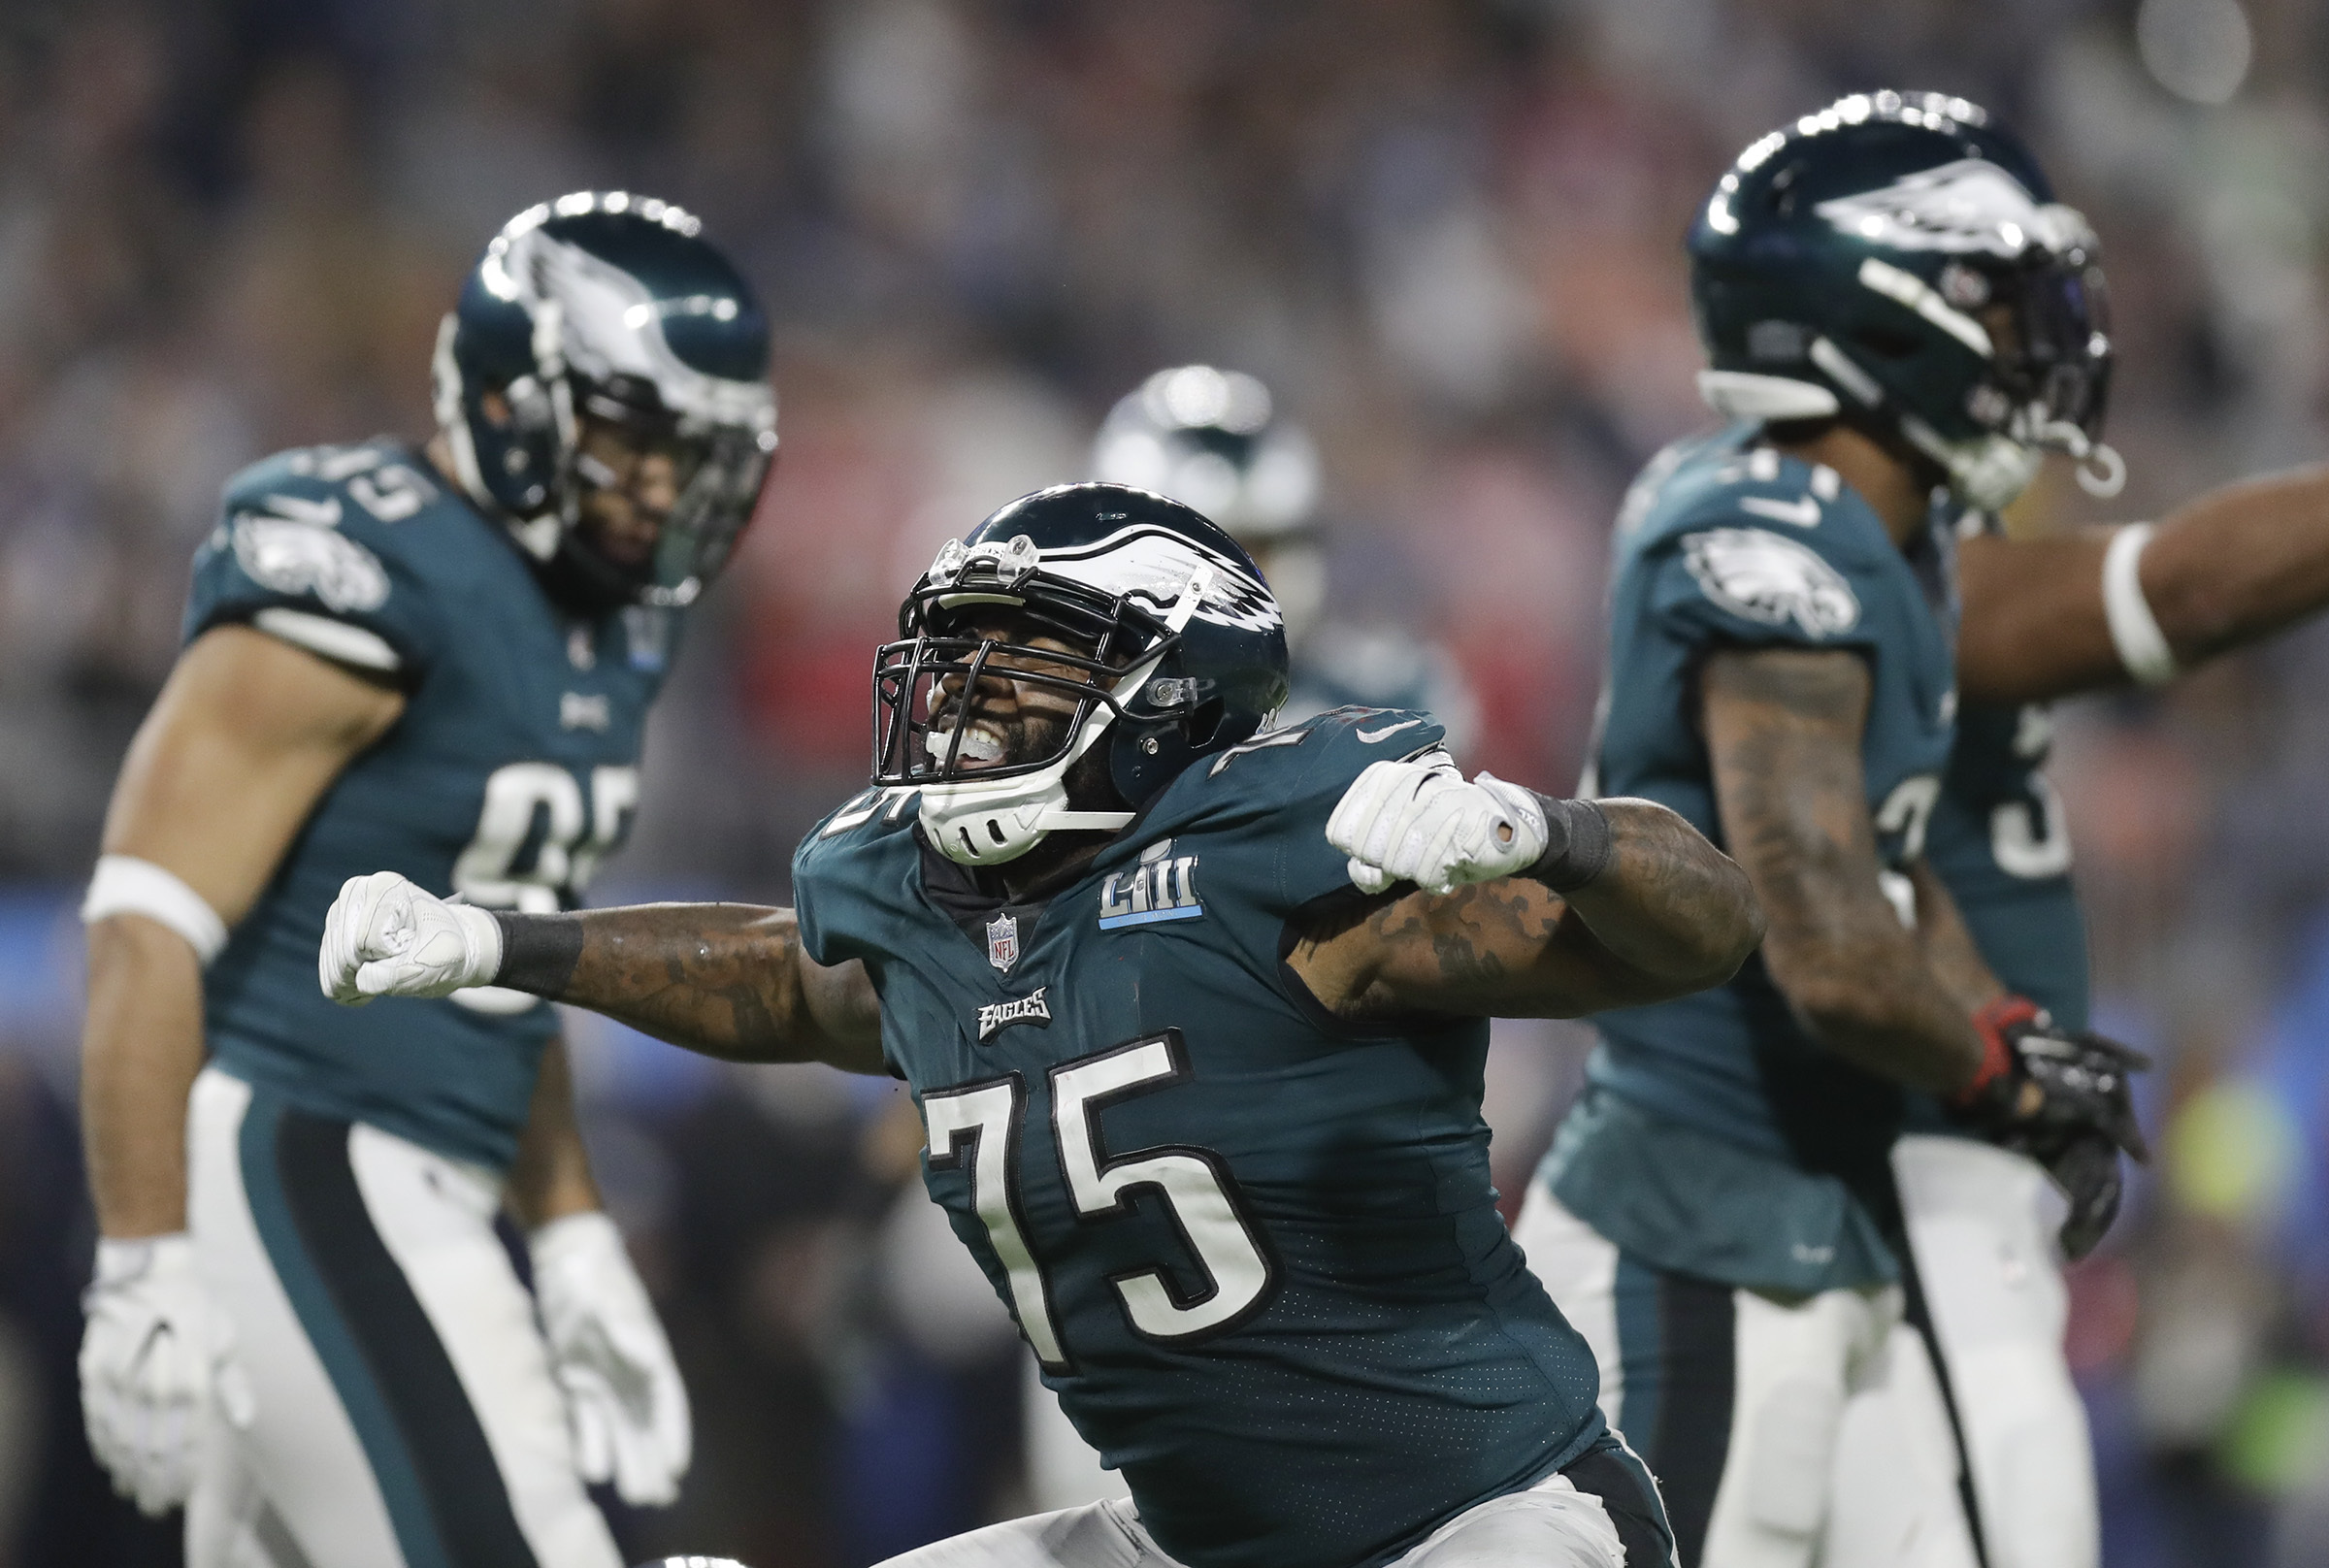 The arrival of Michael Bennett would mean the (likely) departure of Vinny Curry, shown here celebrating a stop in Super Bowl LII.